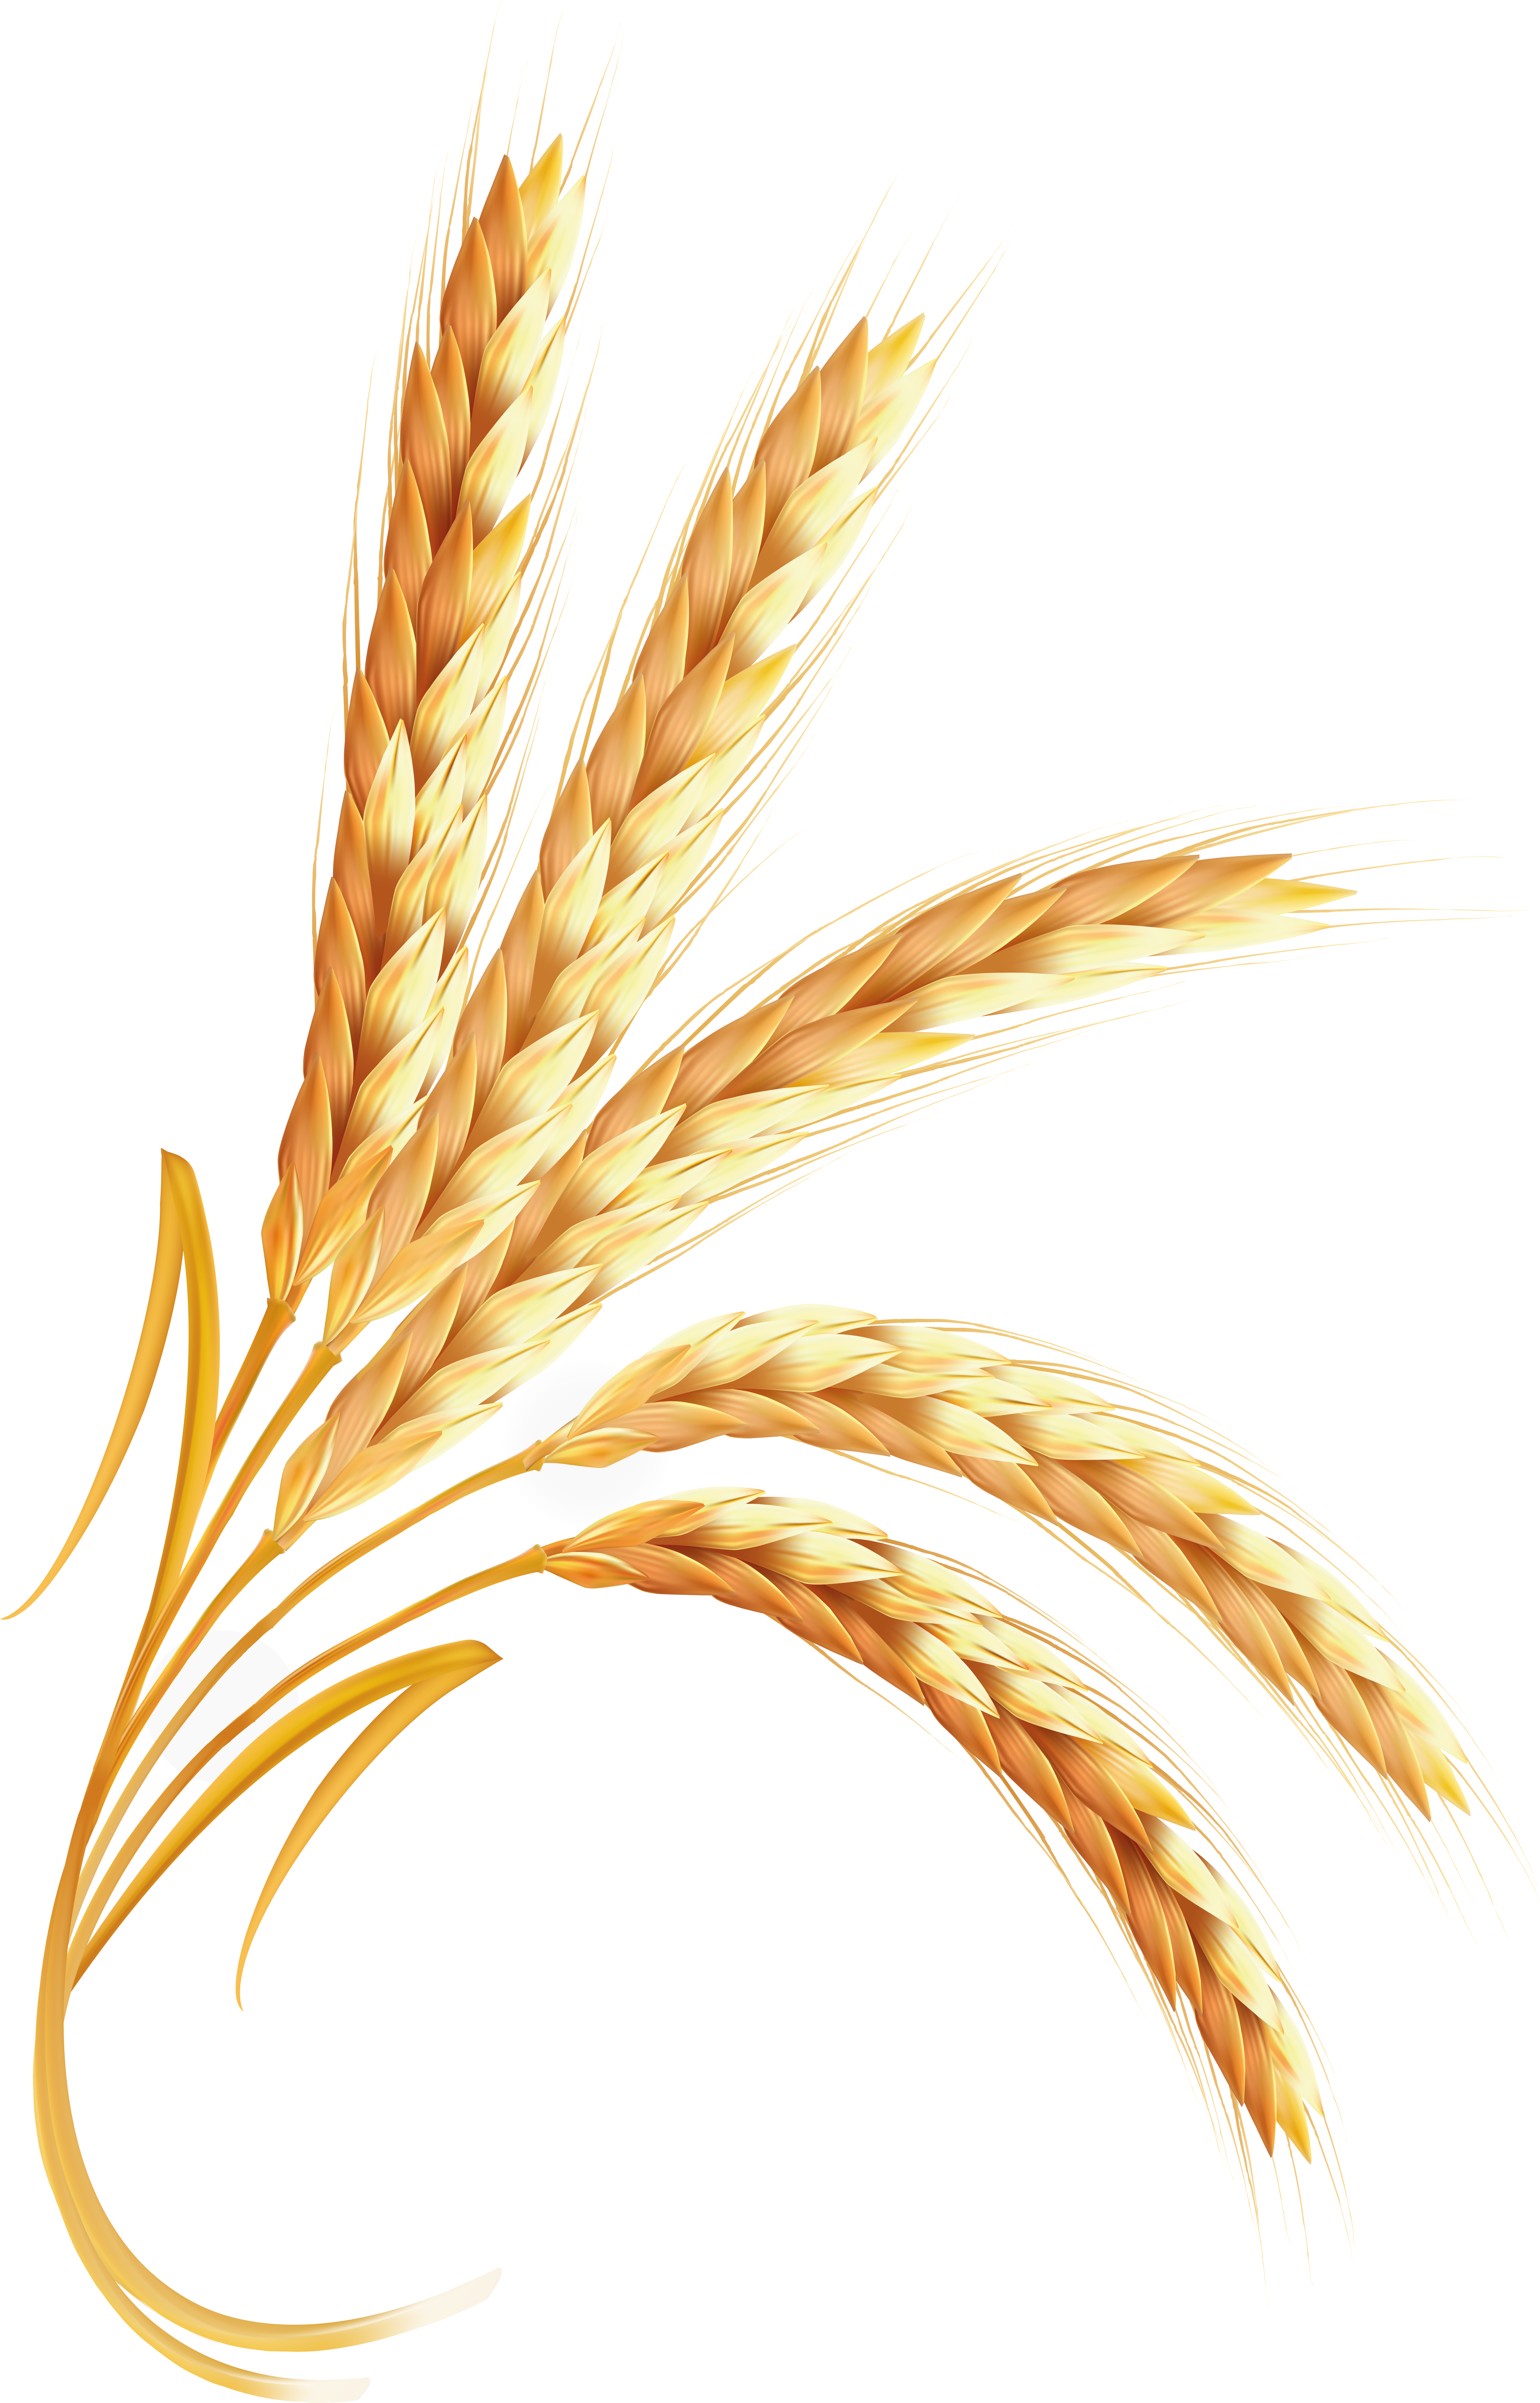 Wheat PNG images free download.